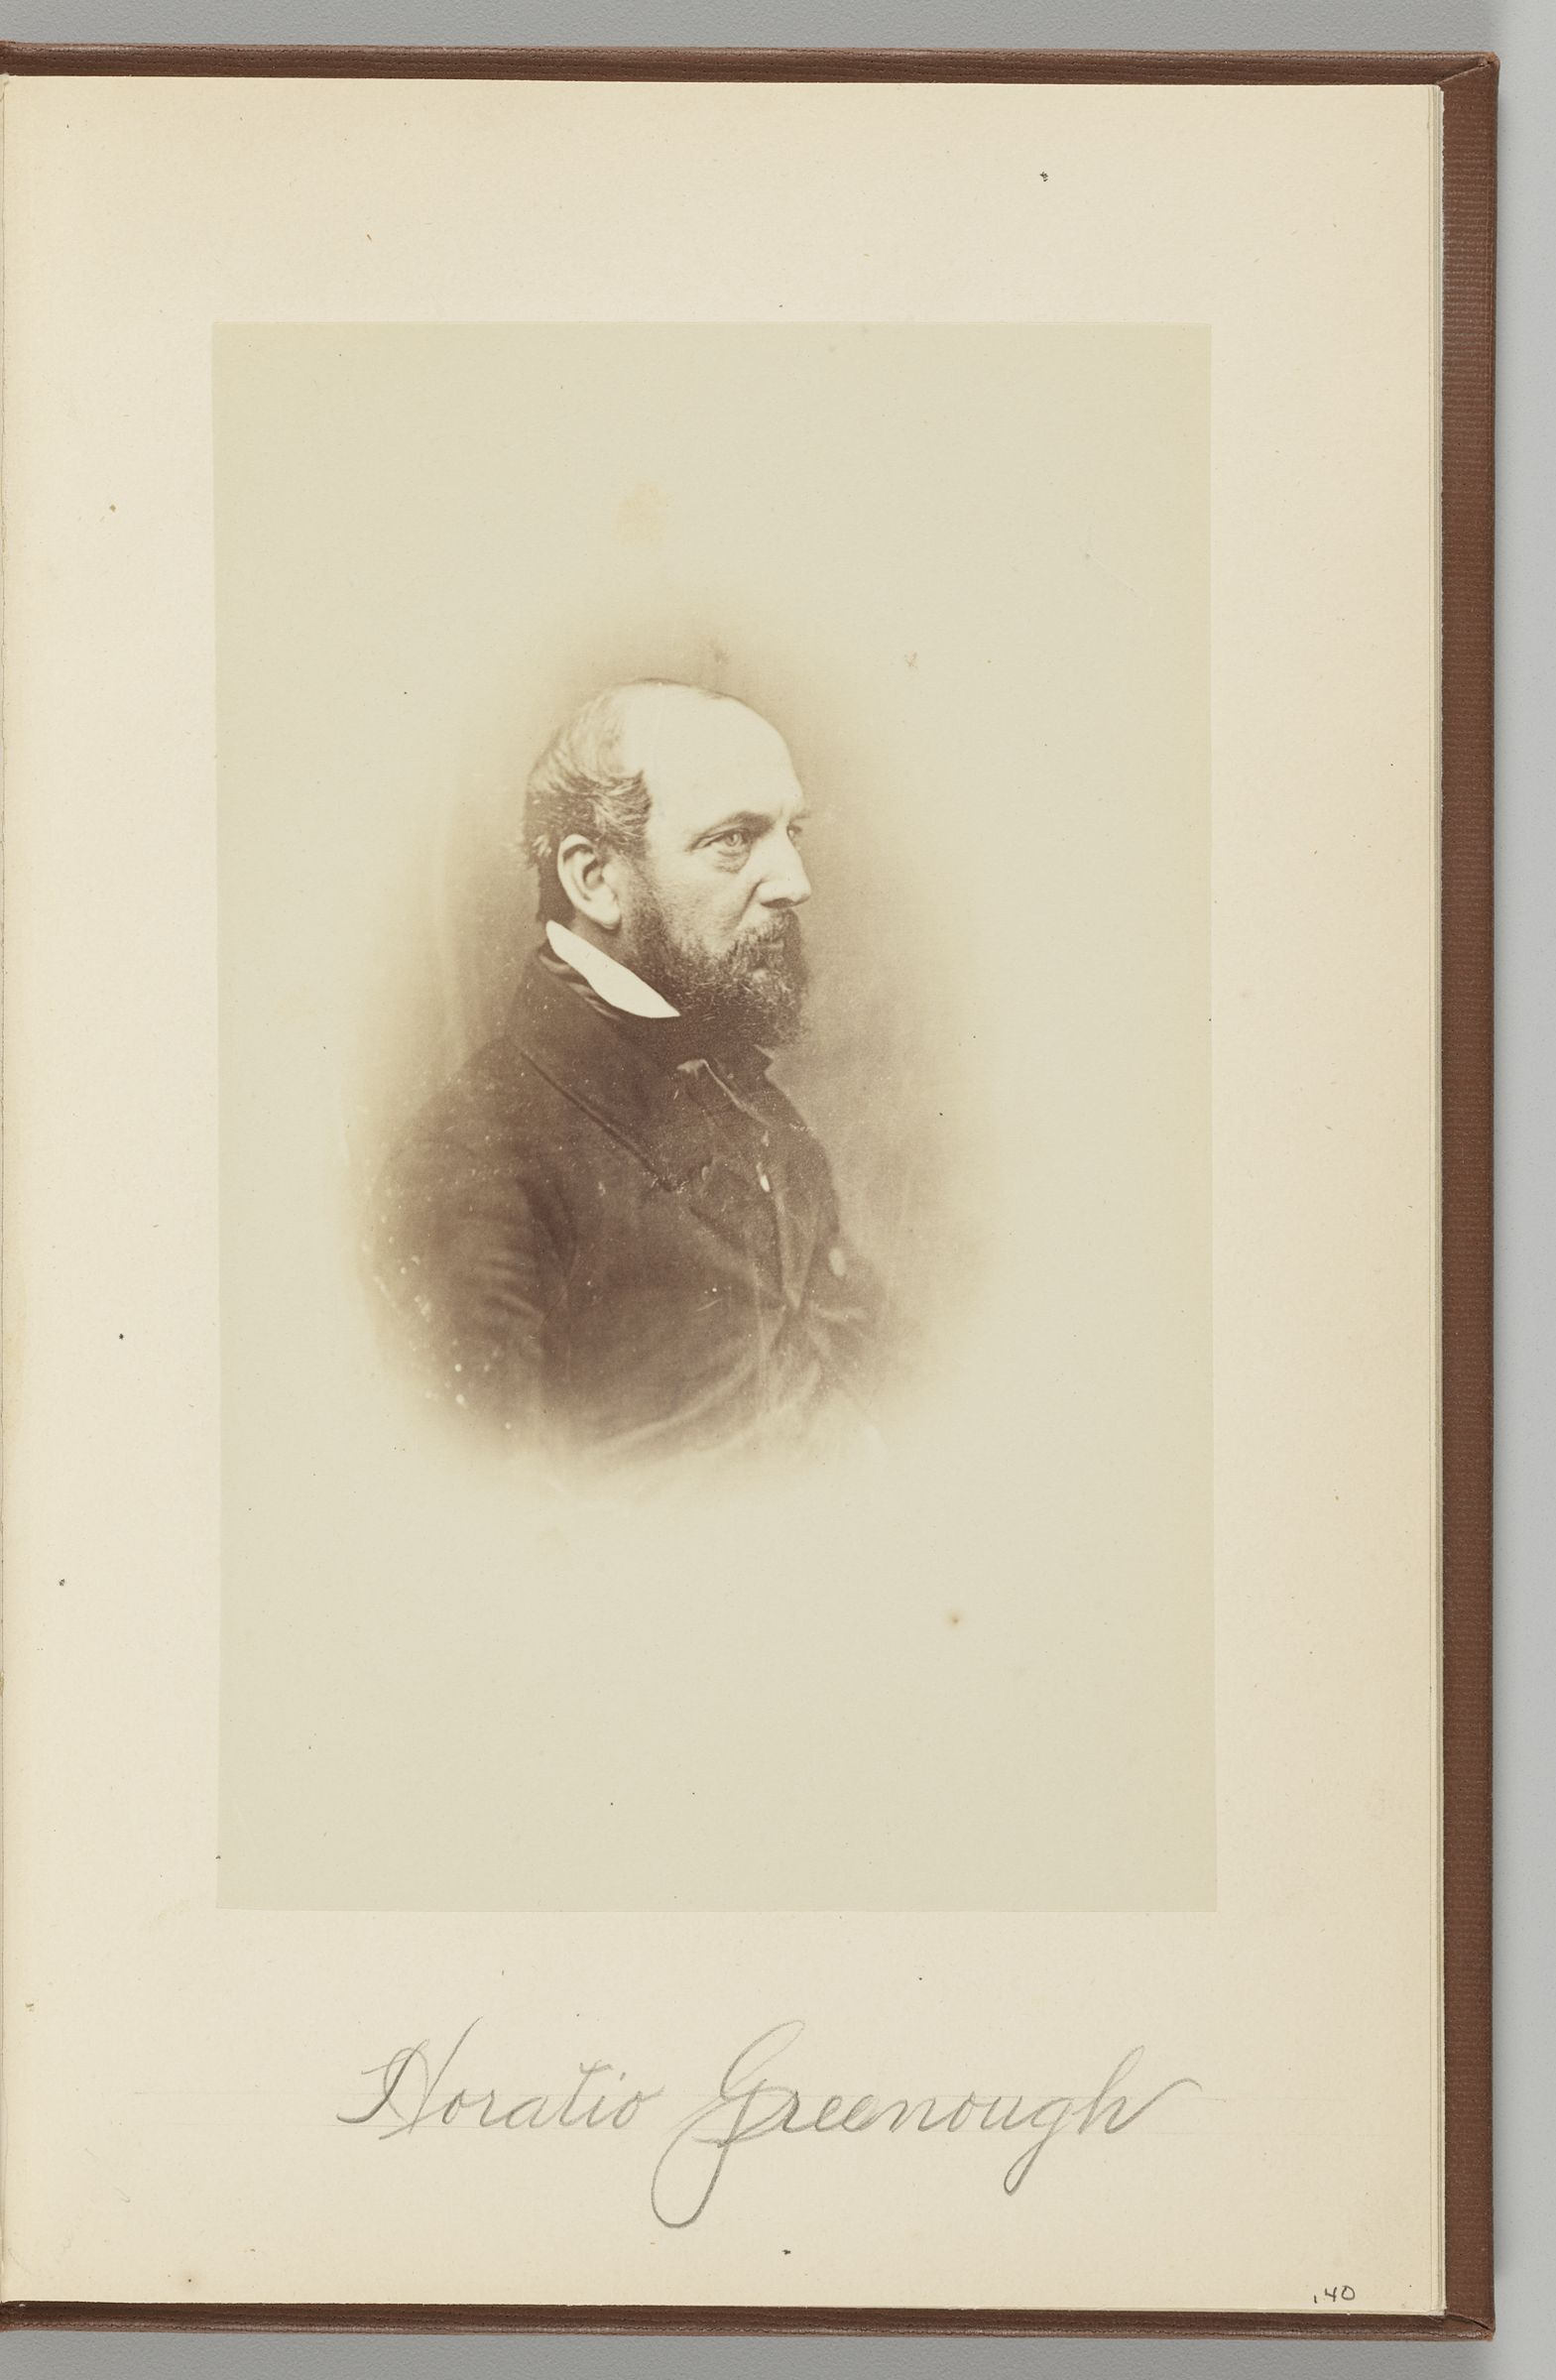 Horatio Greenough (1805-1852) [From A Daguerreotype]